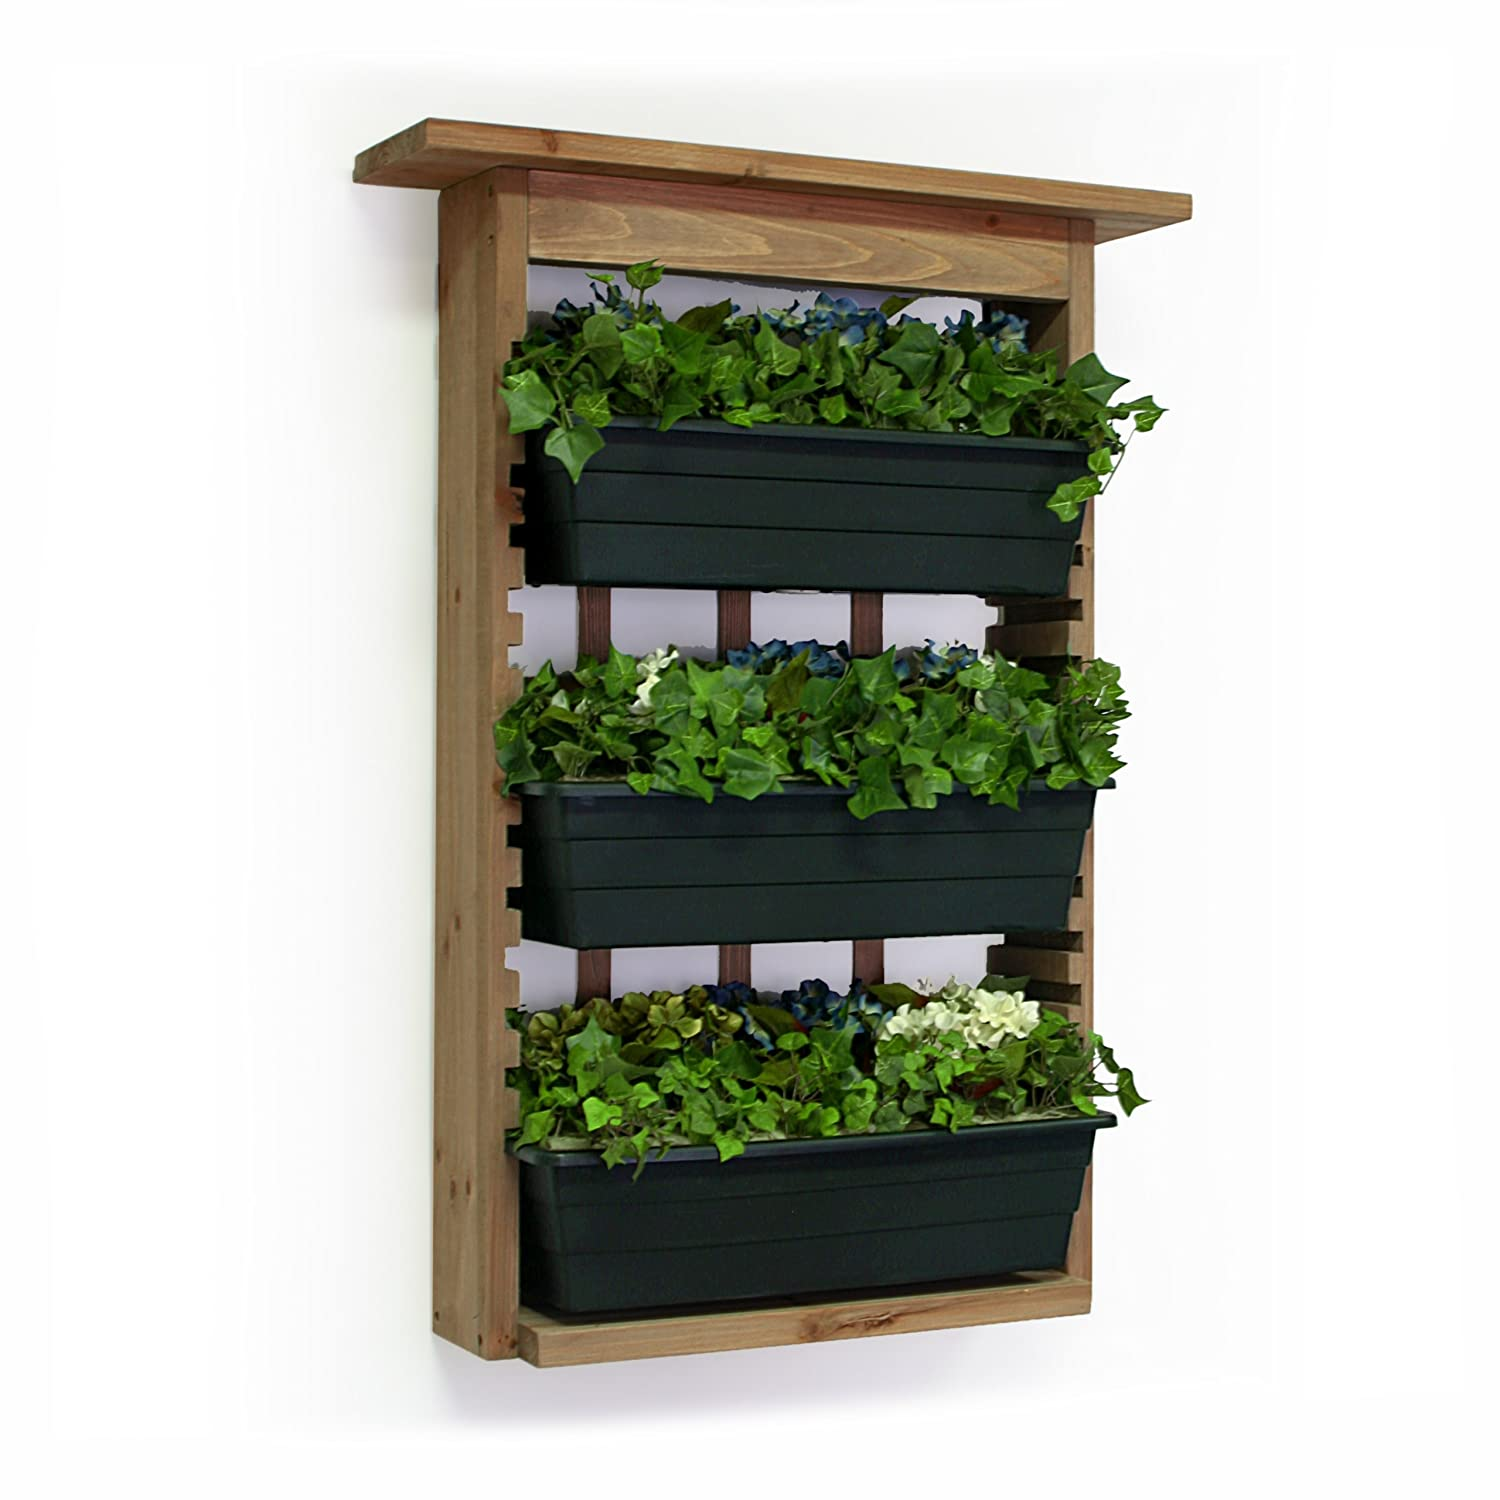 Amazon algreen 34002 garden view vertical living wall planter amazon algreen 34002 garden view vertical living wall planter garden outdoor workwithnaturefo